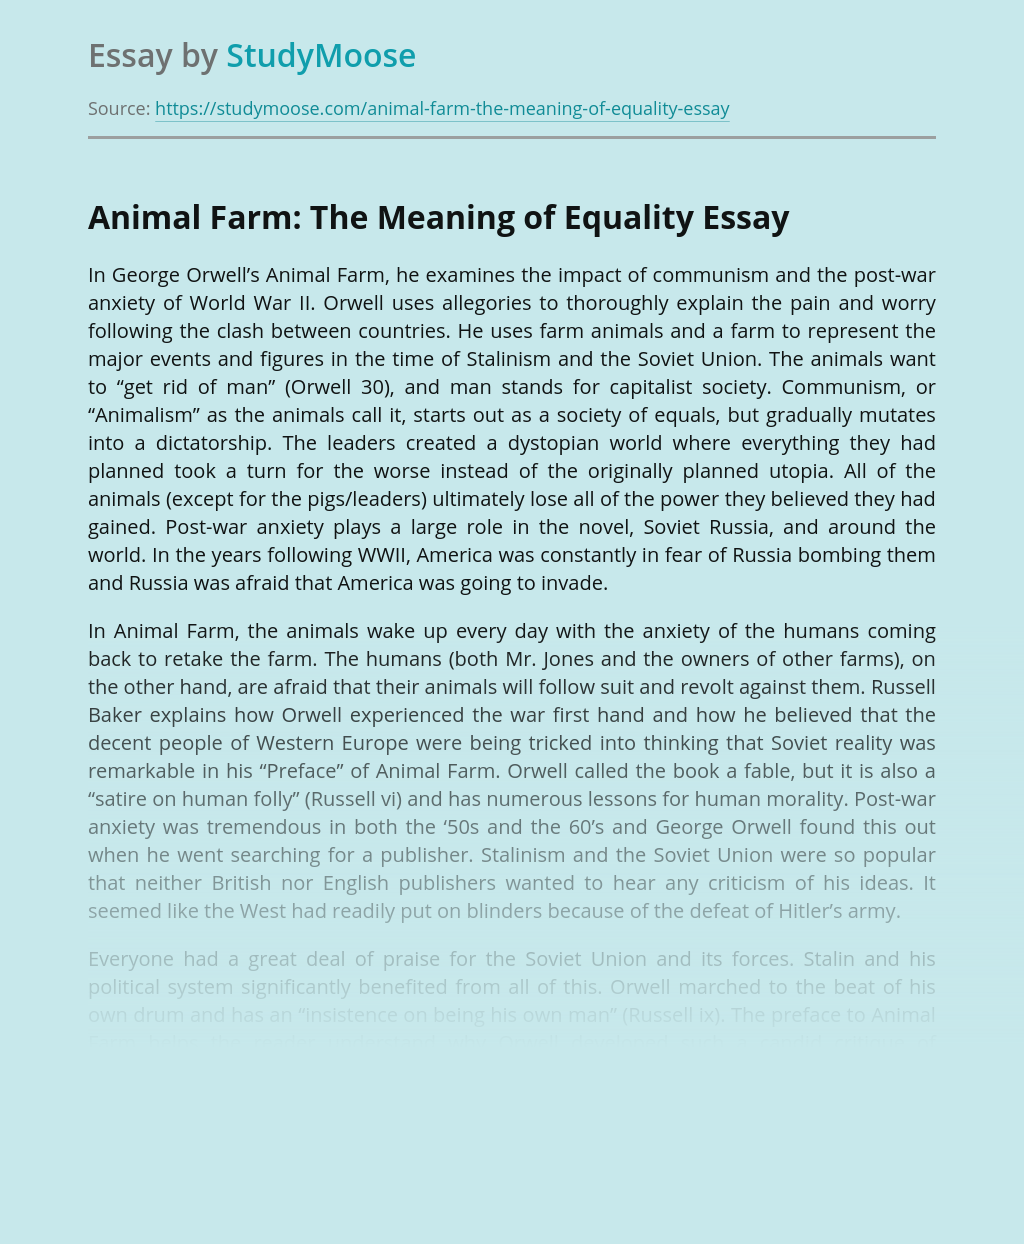 Animal Farm: The Meaning of Equality